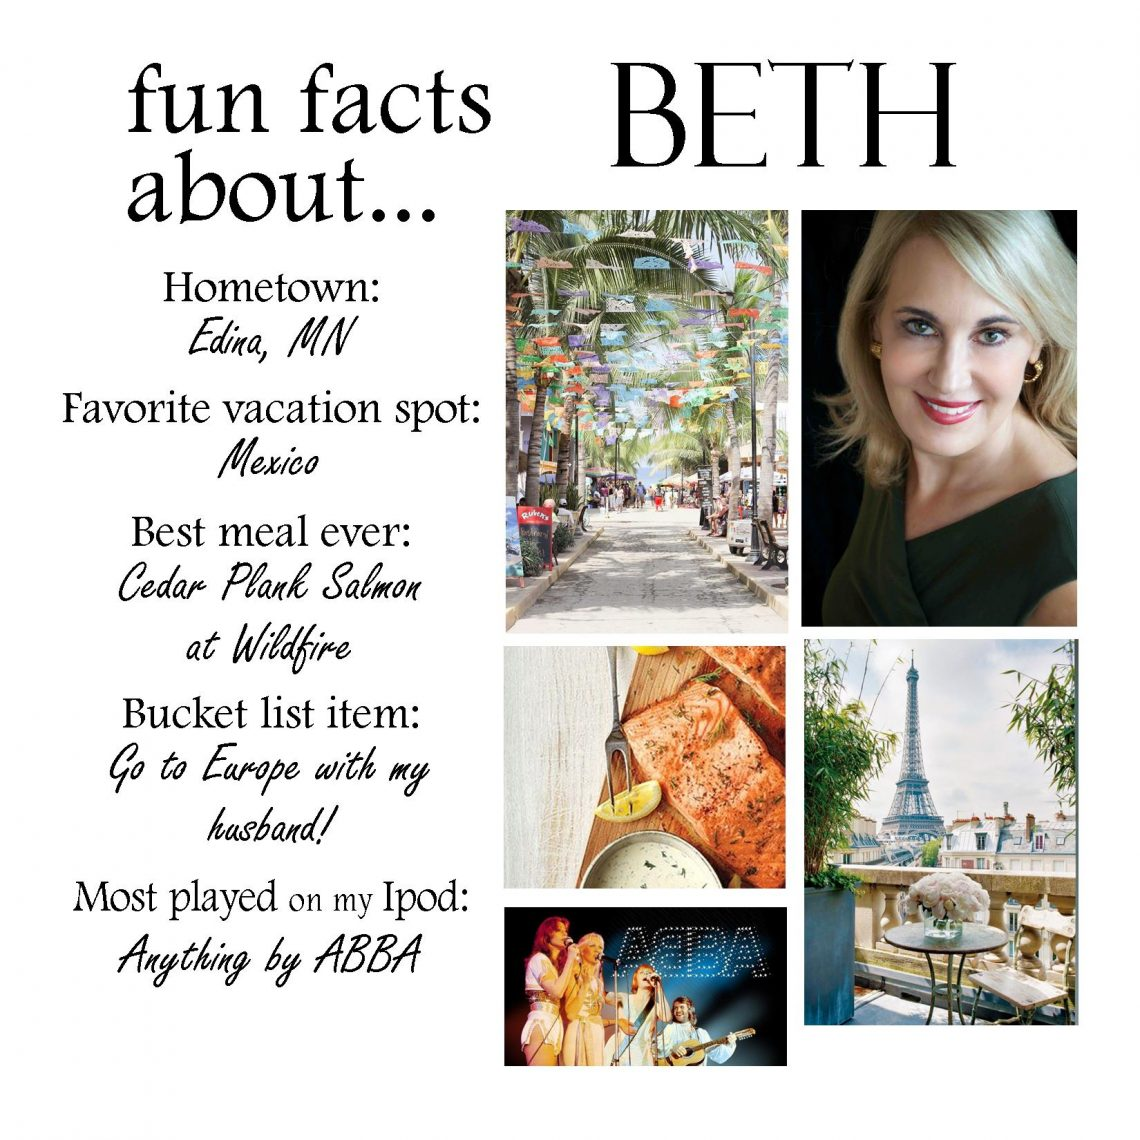 beth fun fact